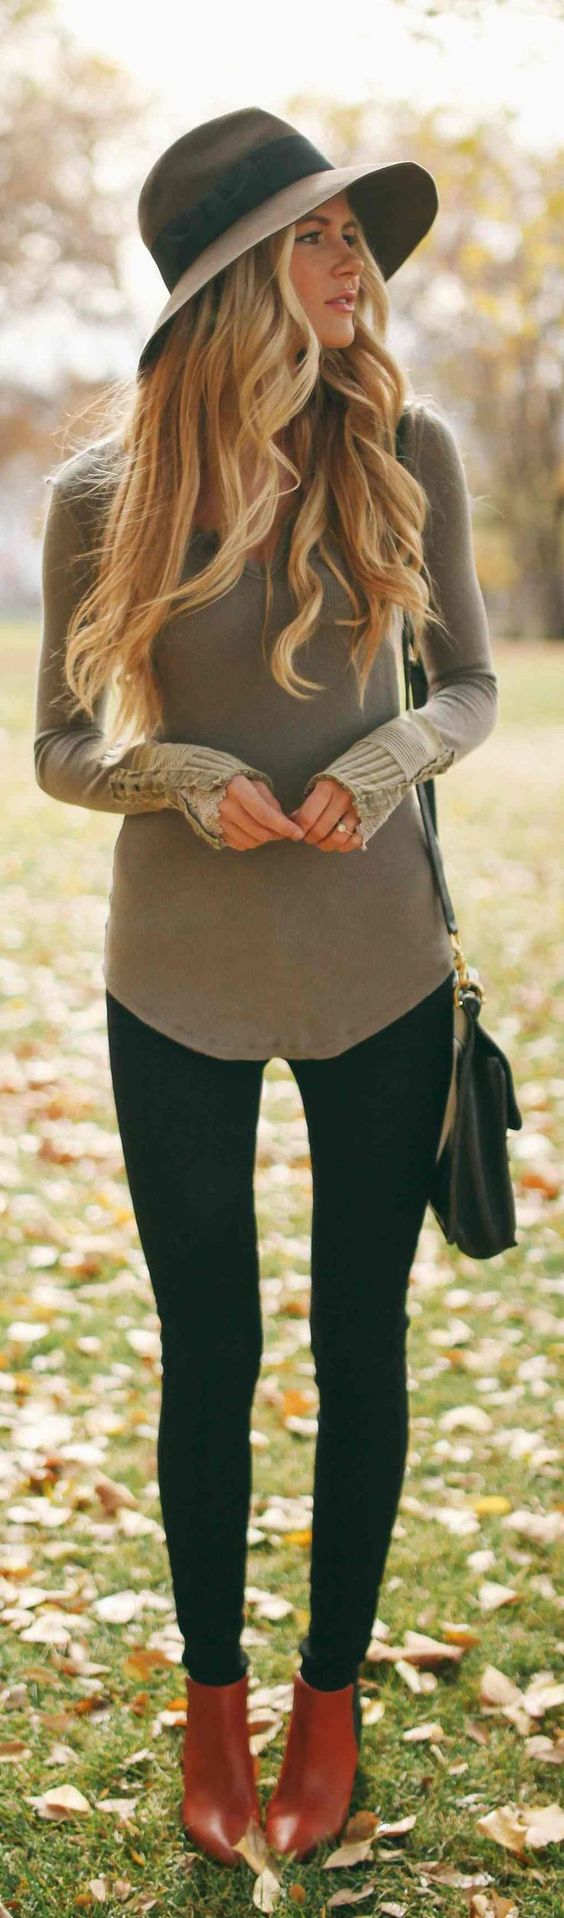 Casual Fall Fashion Inspiration Rose Clearfield